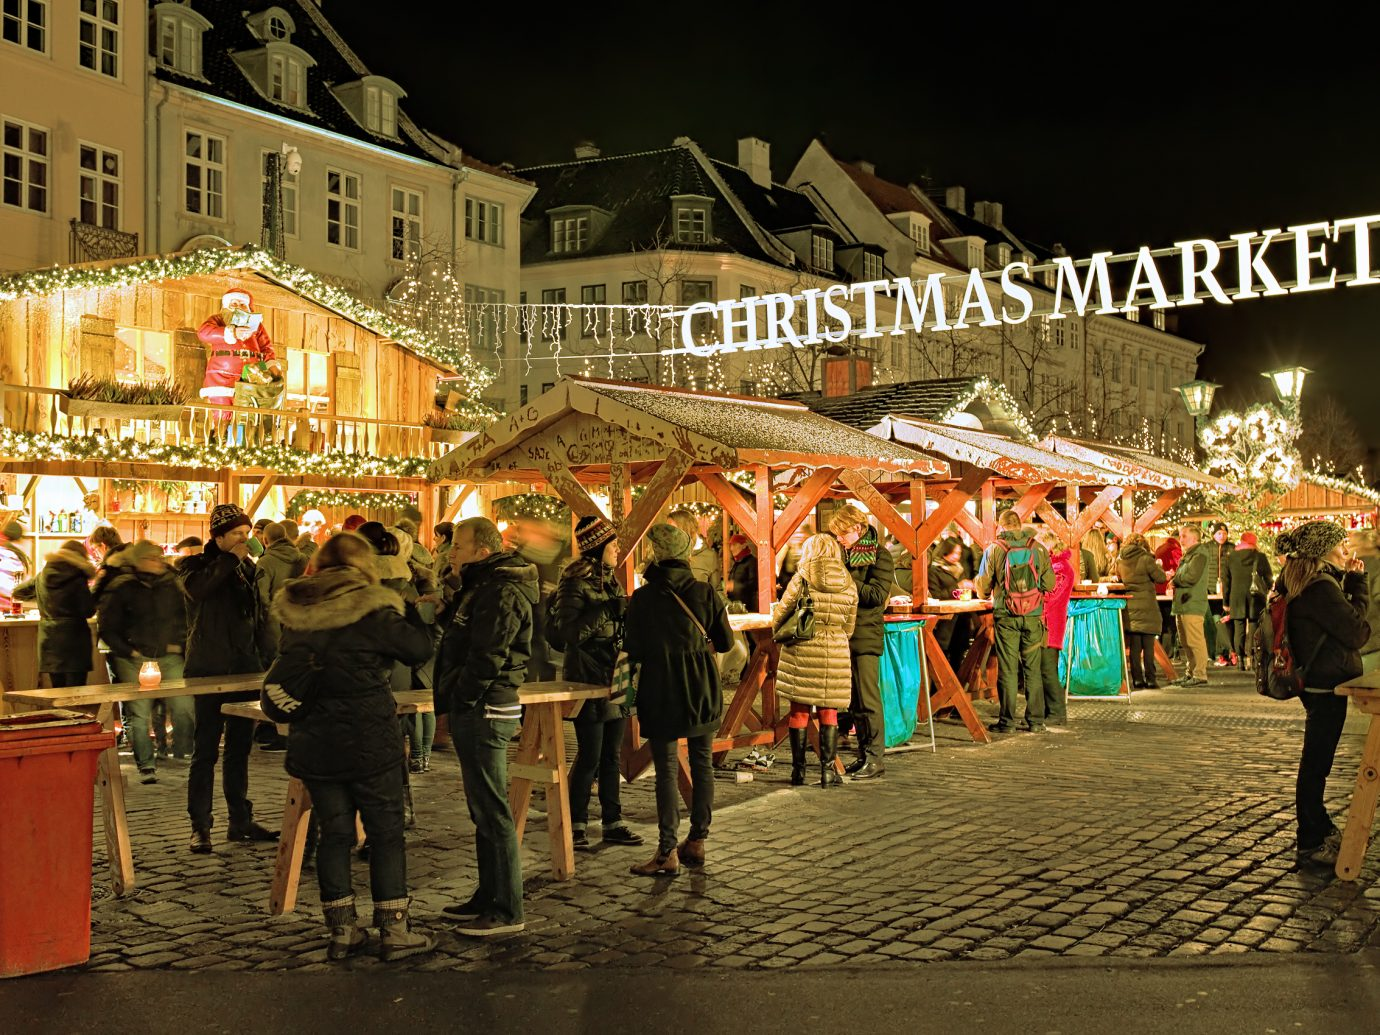 Deutsch's Christmas Market on Hojbro Plads square. The organizer of the market is Michael Deutsch therefore it named Deutsch's Christmas Market.